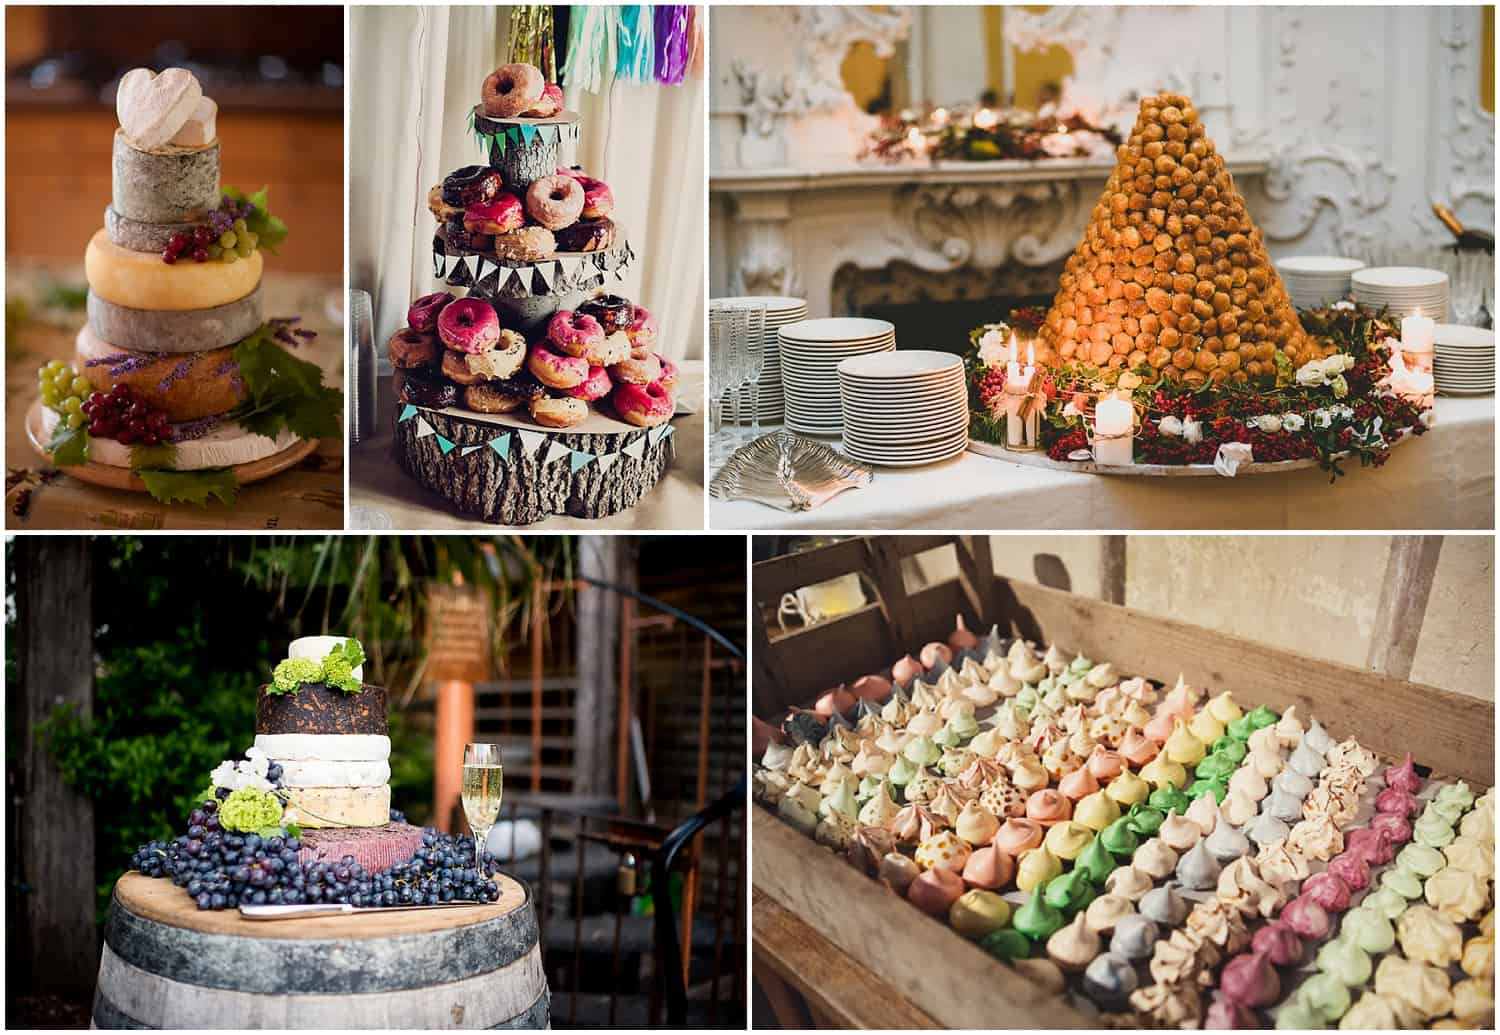 Alternative wedding cakes, dessert tables, cakes of cheese